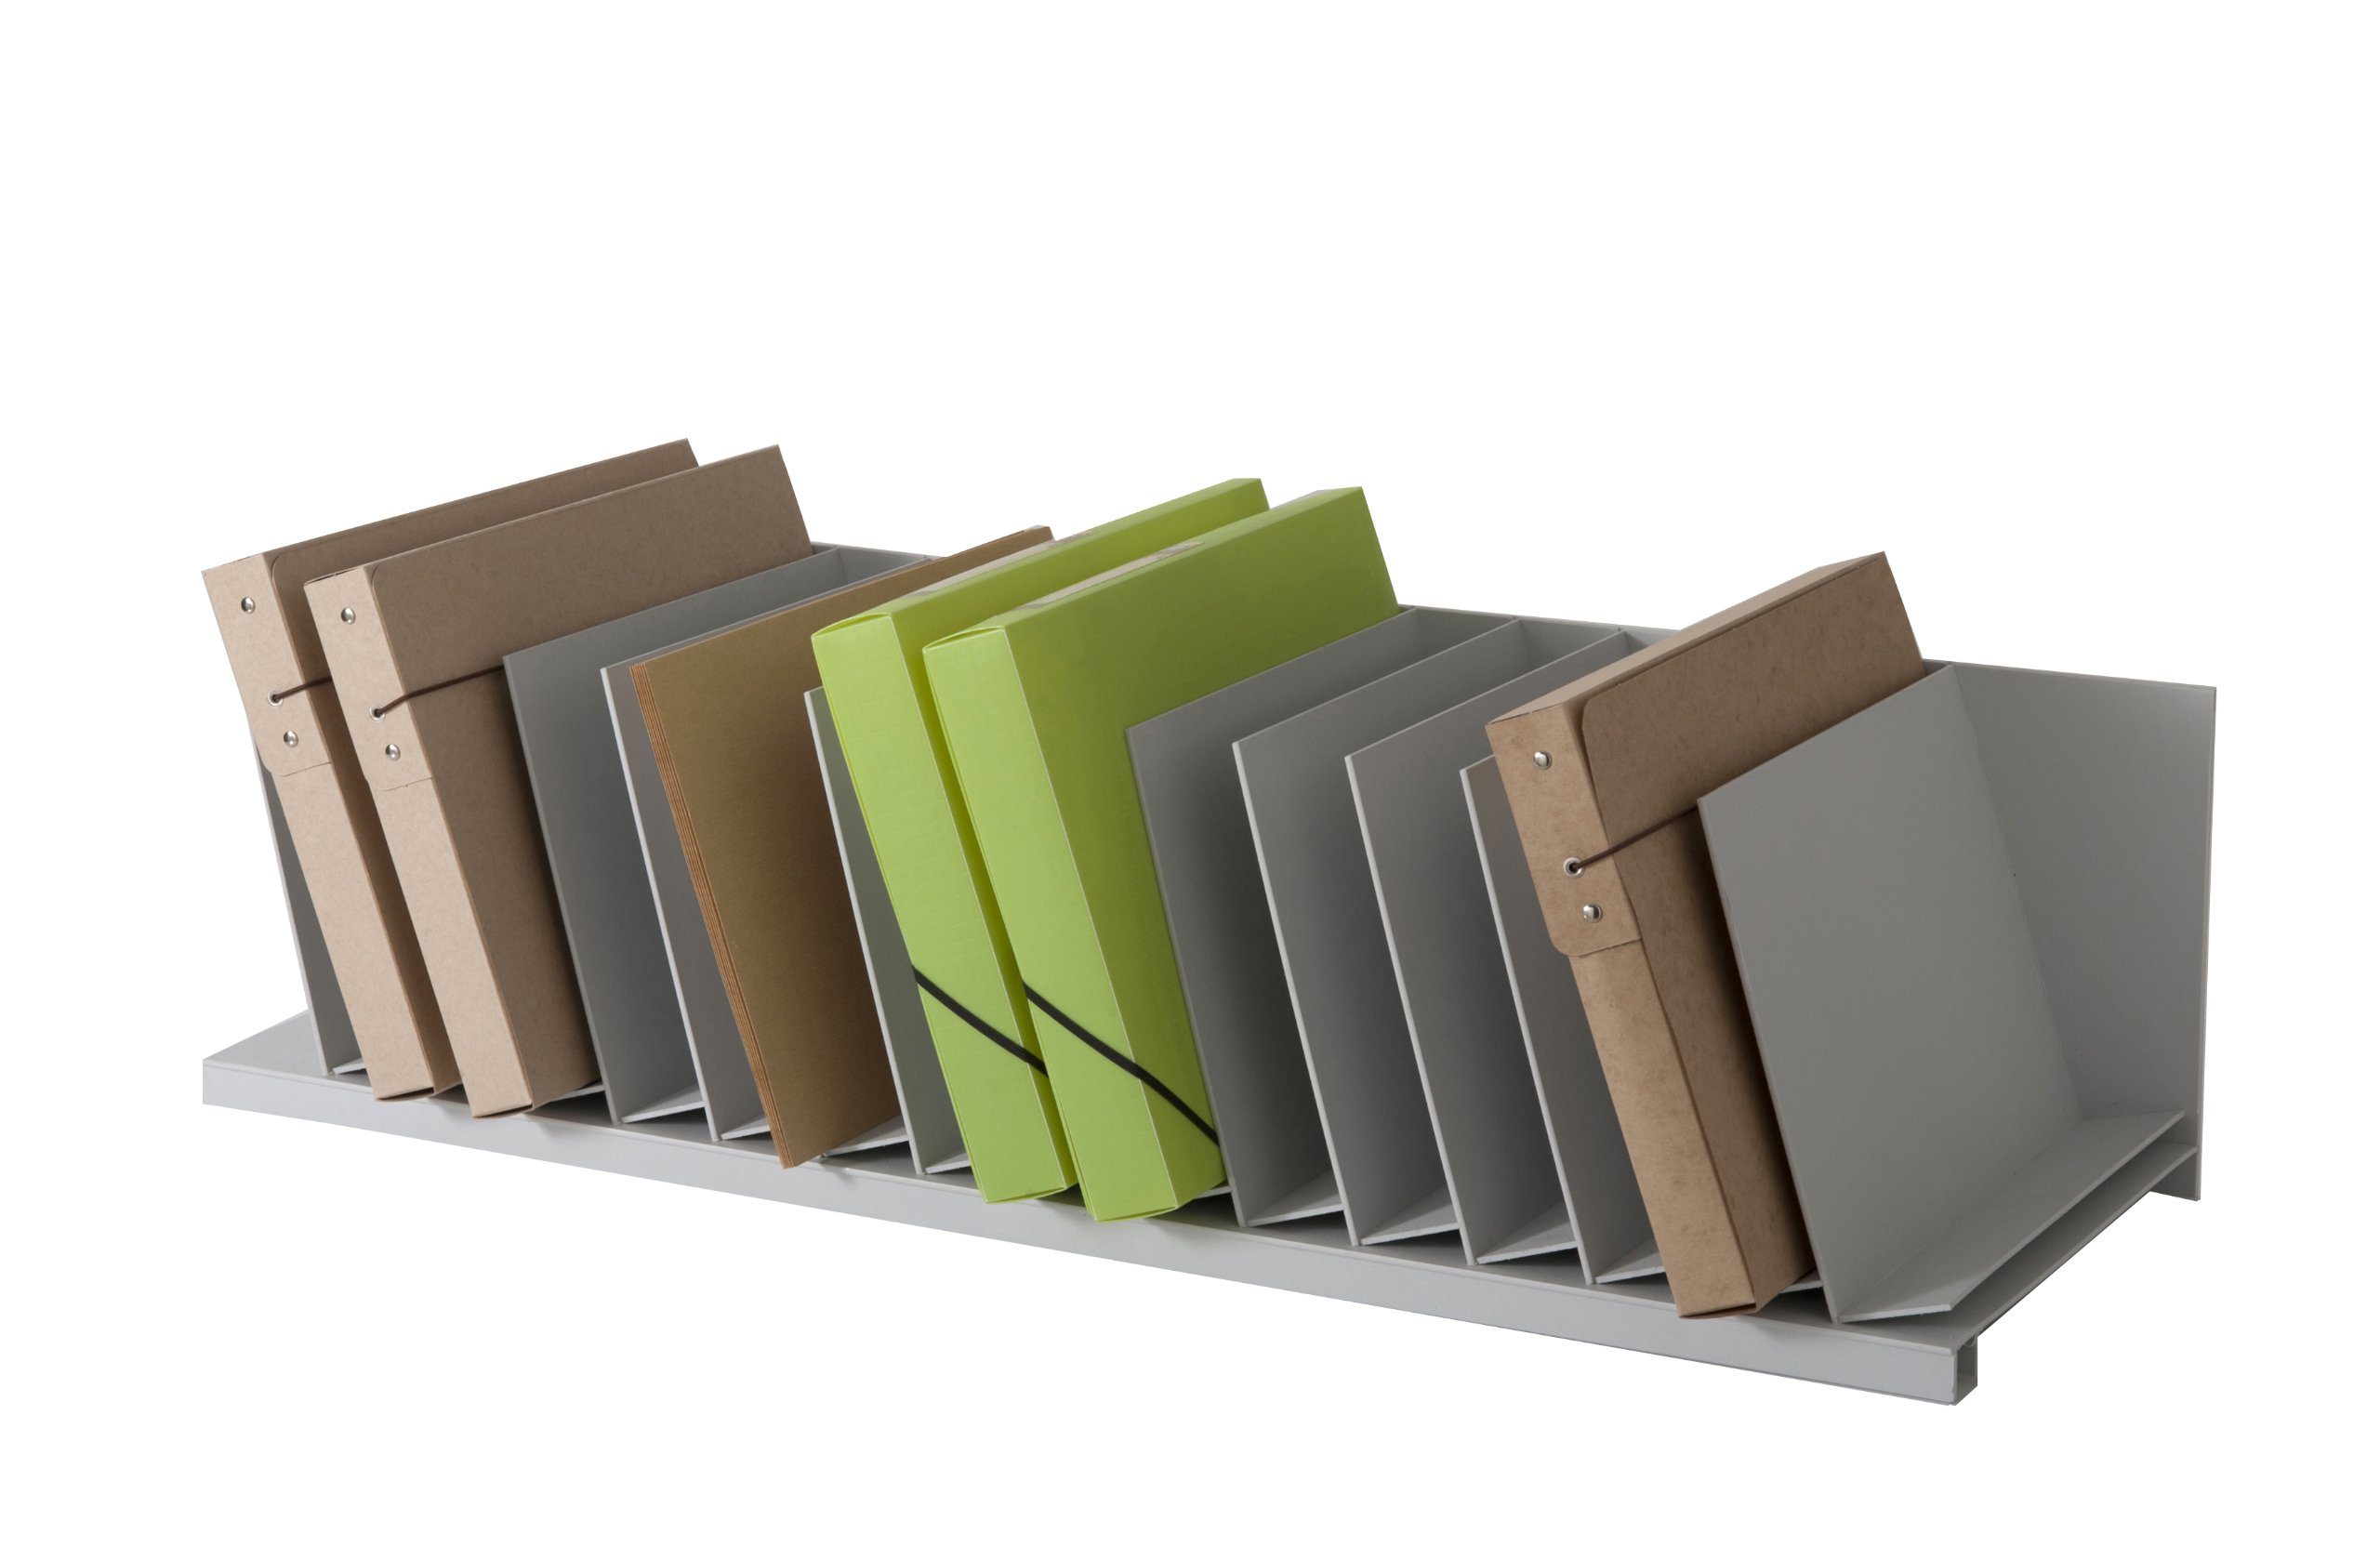 PaperFlow 31-4/7-Inch Inclined Vertical Desktop Organizer, 14 Compartments, Grey (4939.02)